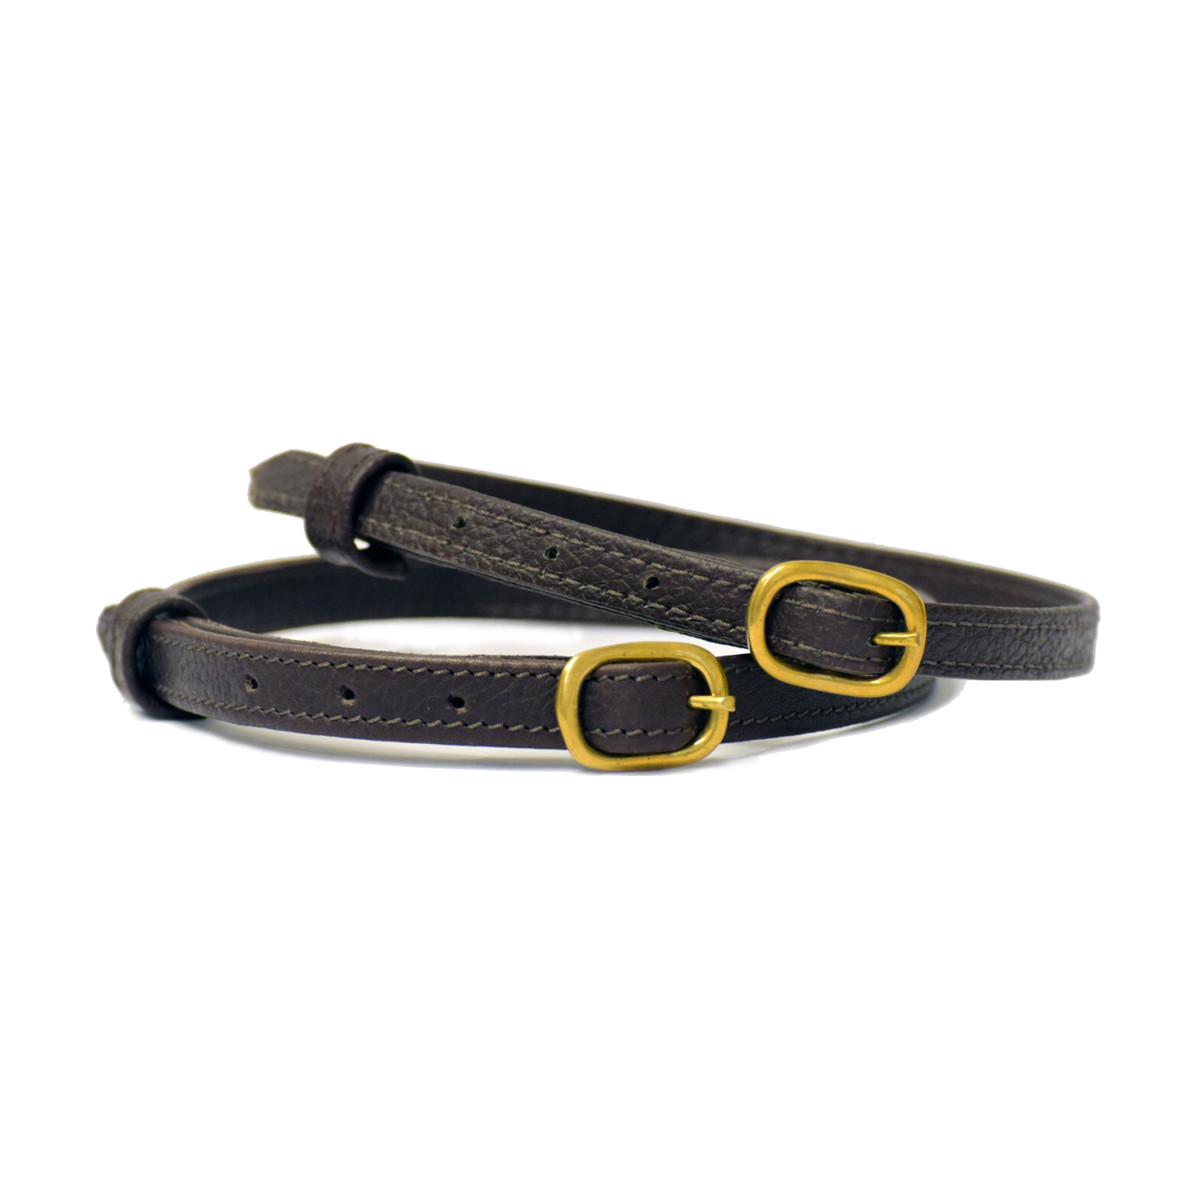 Stübben Spurs Straps Leather Ebony Brass